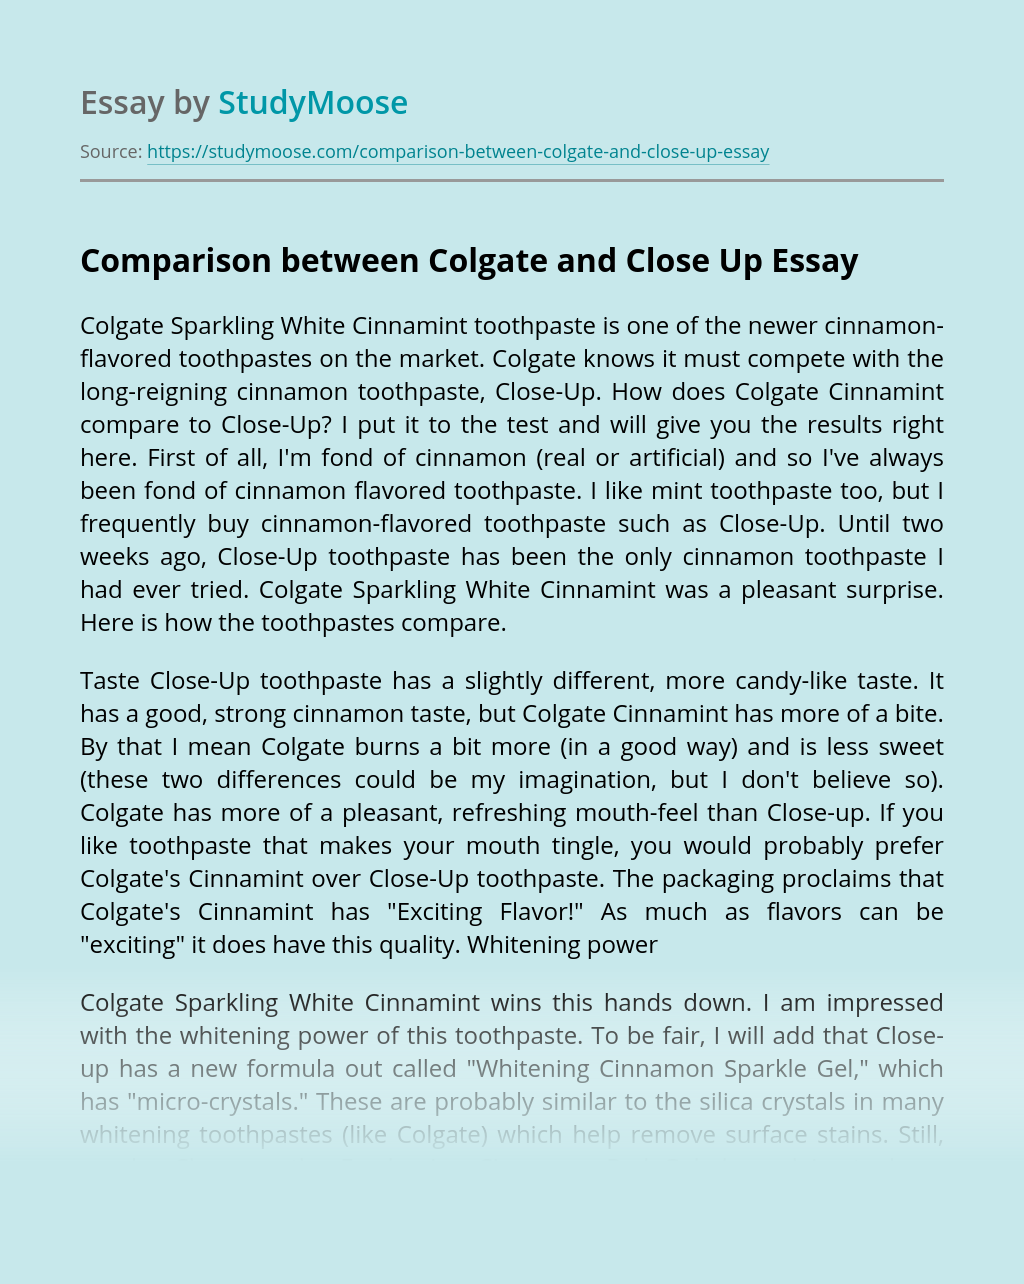 Comparison between Colgate and Close Up